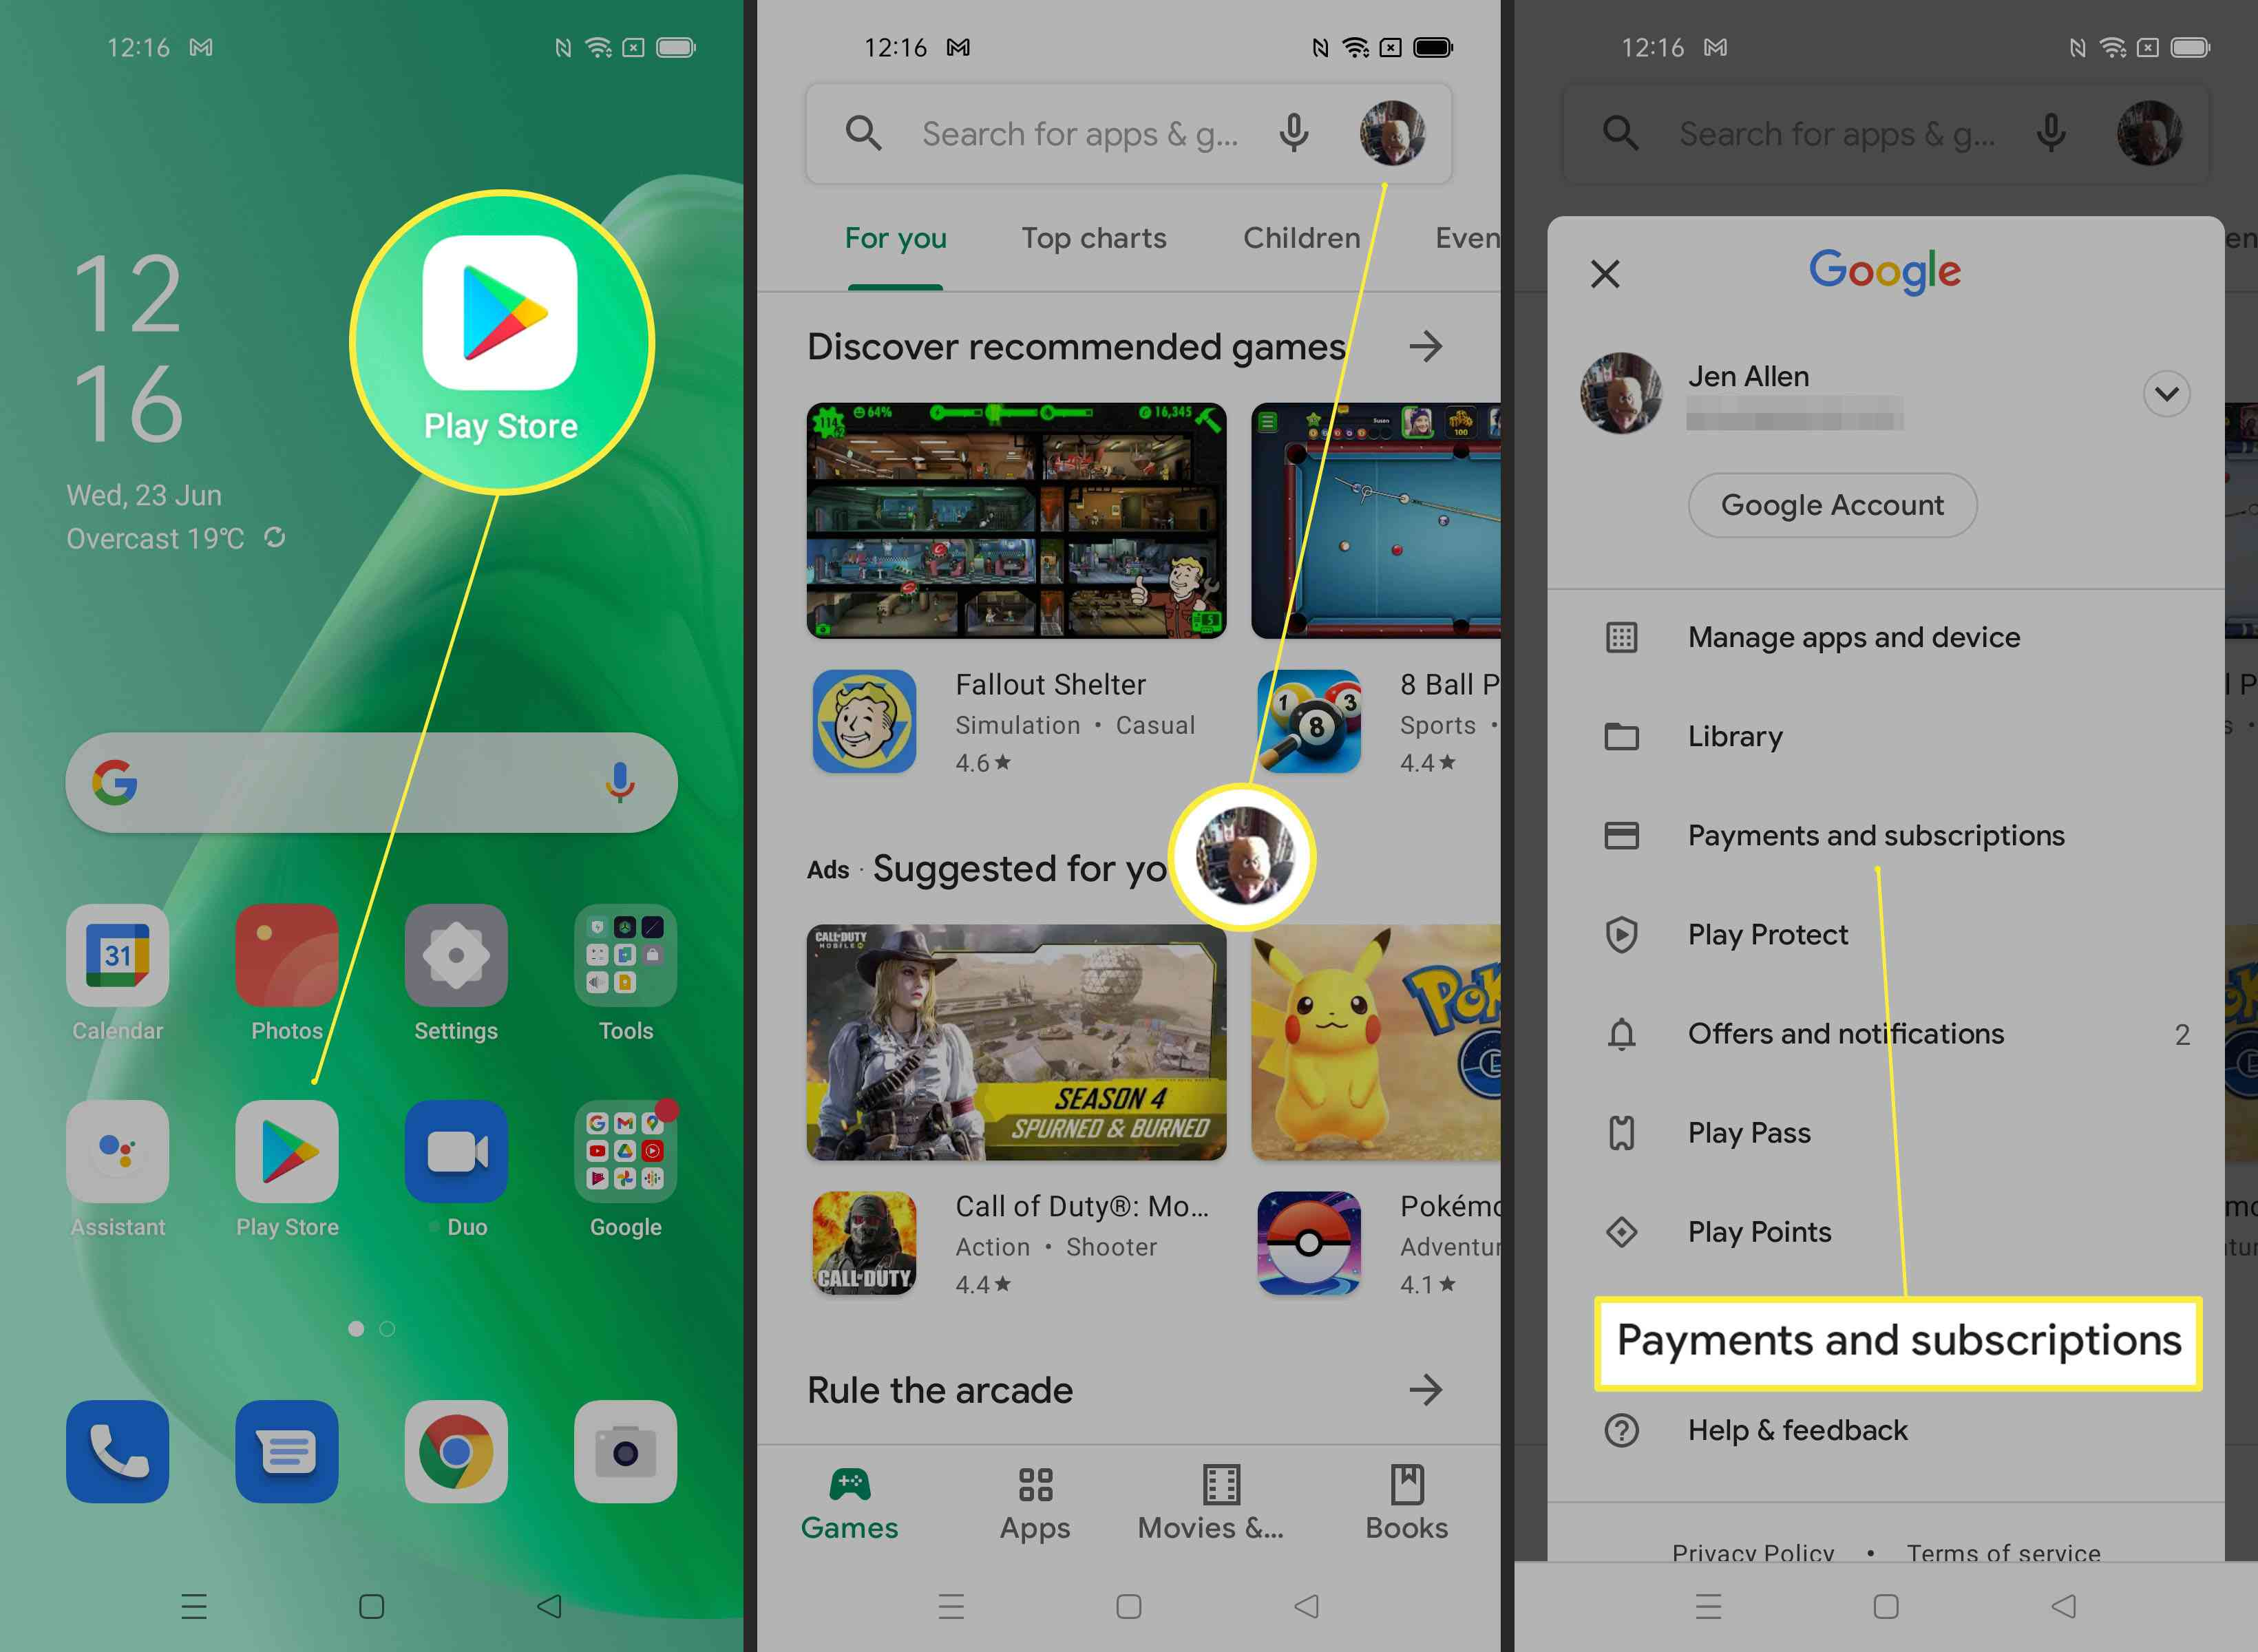 Steps required to find Payments and Subscriptions on Android